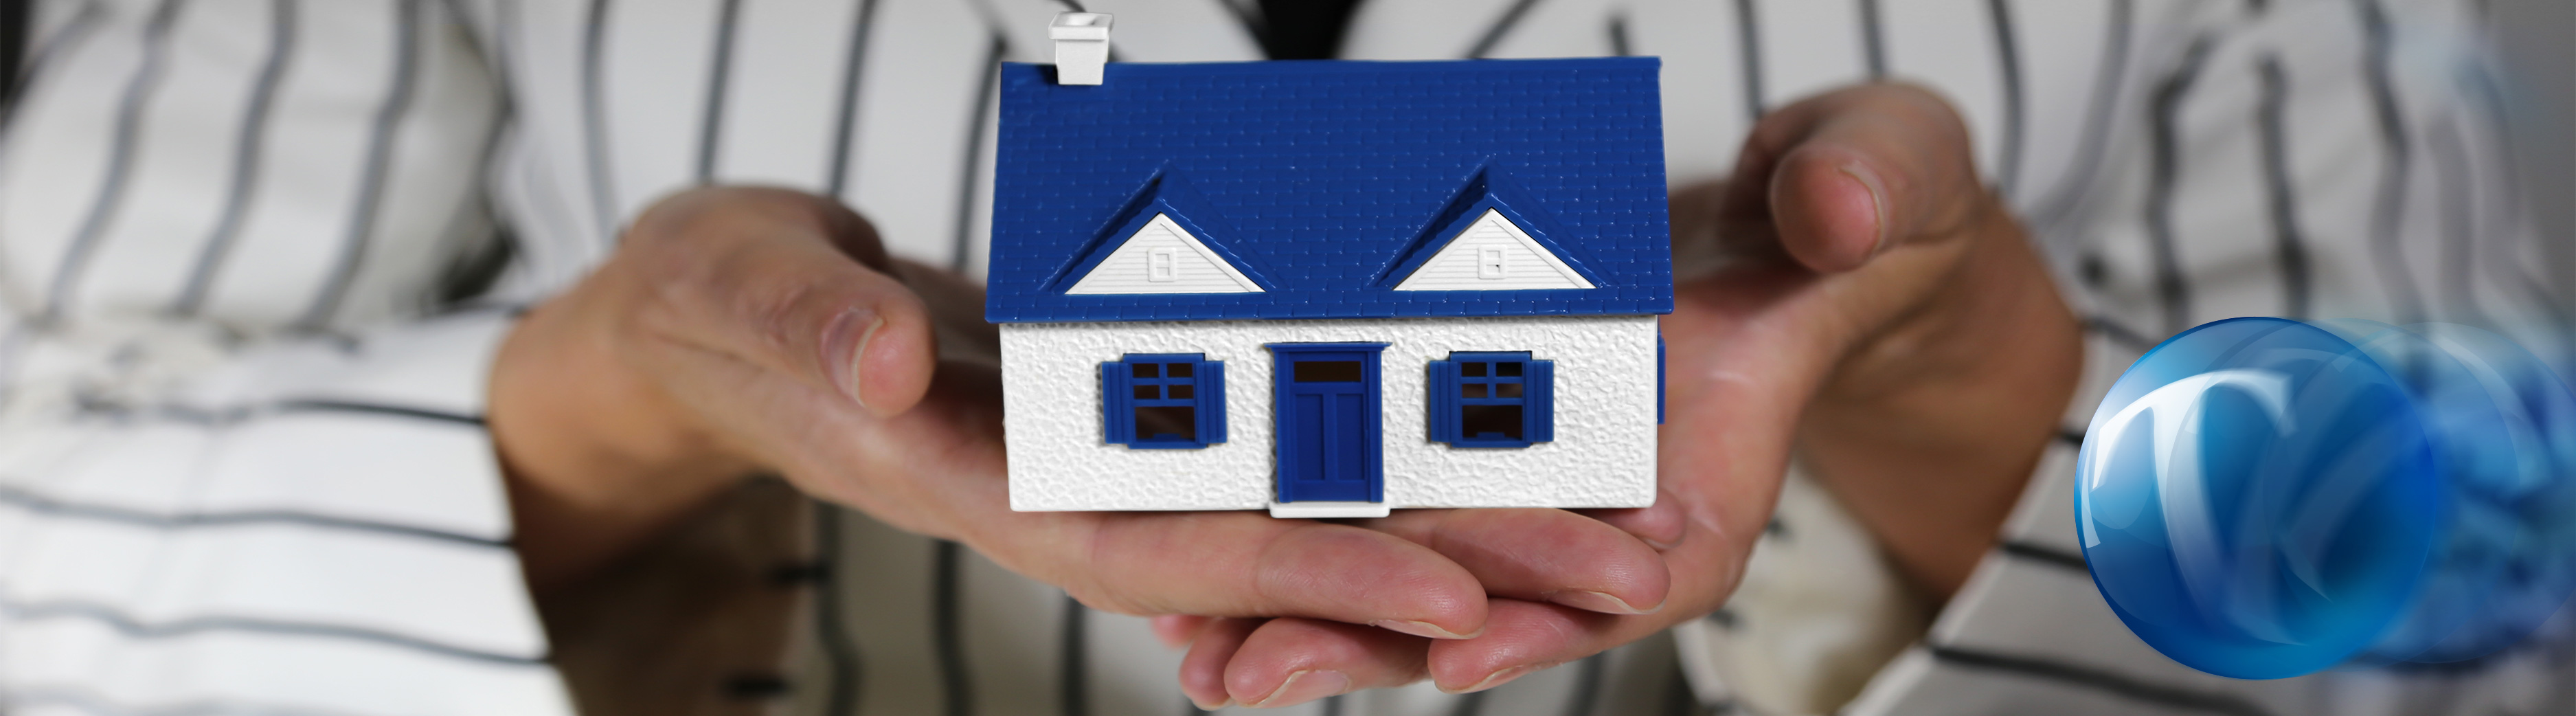 Image of person holding a house with blue roof